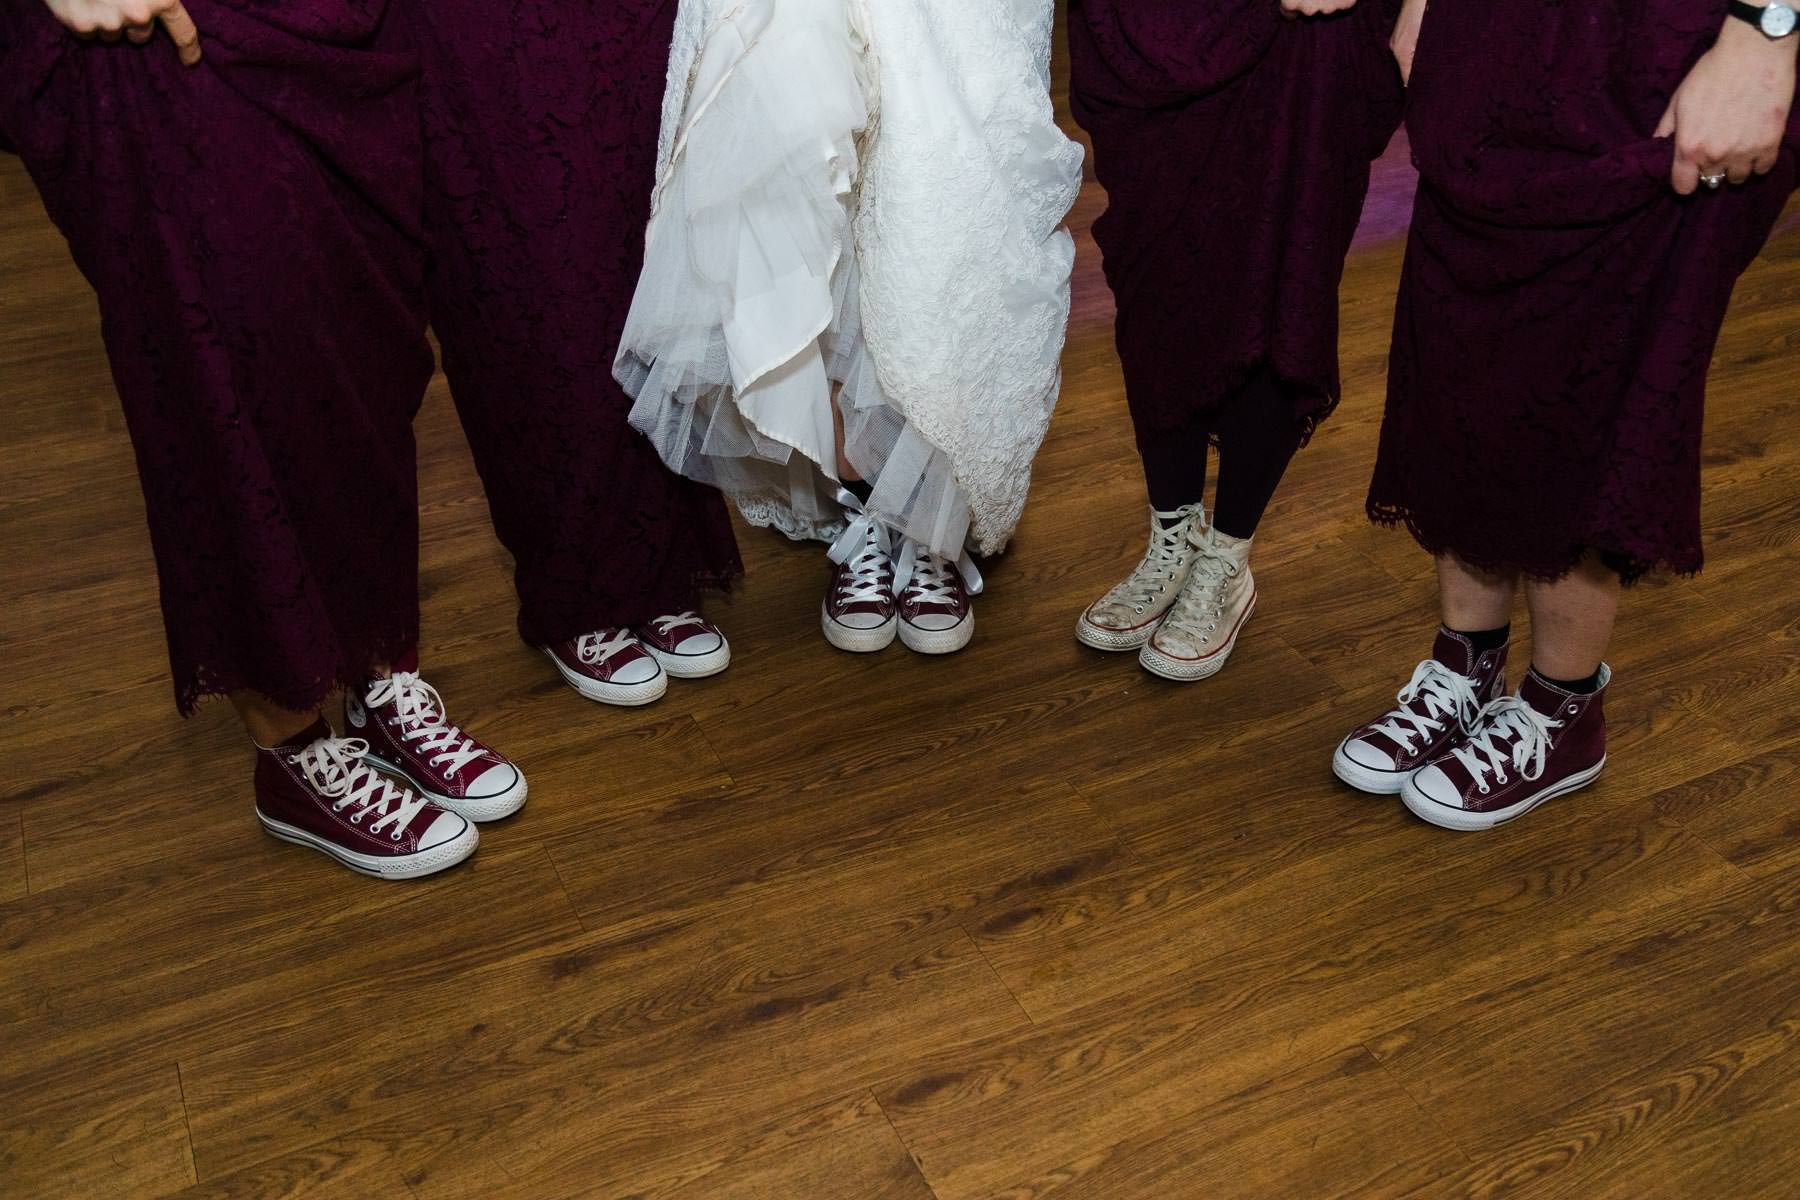 Bridesmaids converse shoes